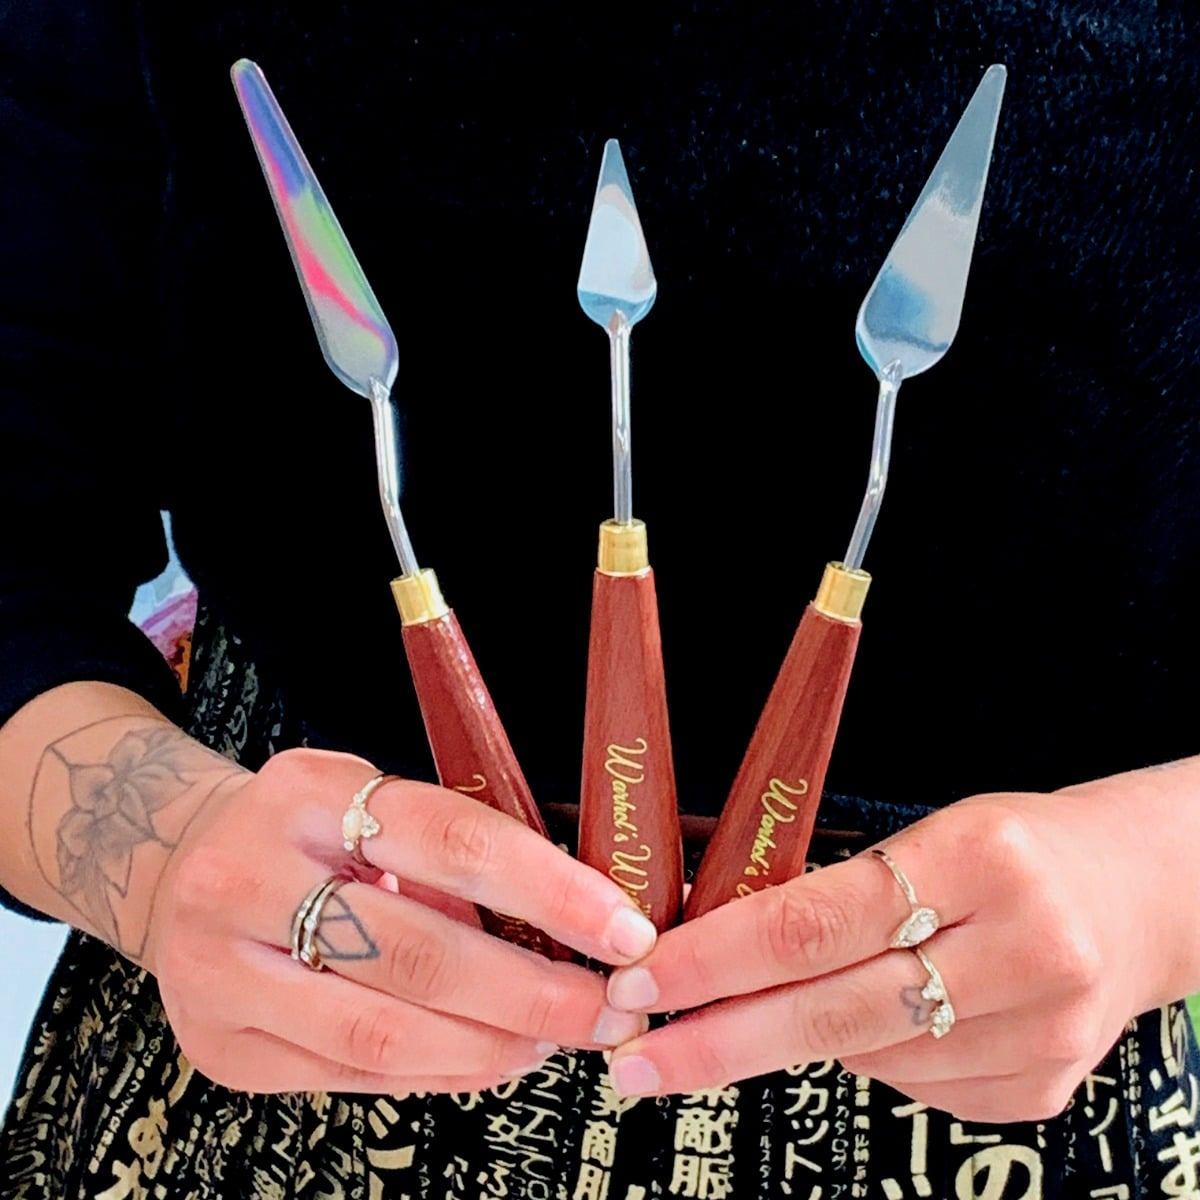 Warhol's Wife Palette Knives being held by Artist